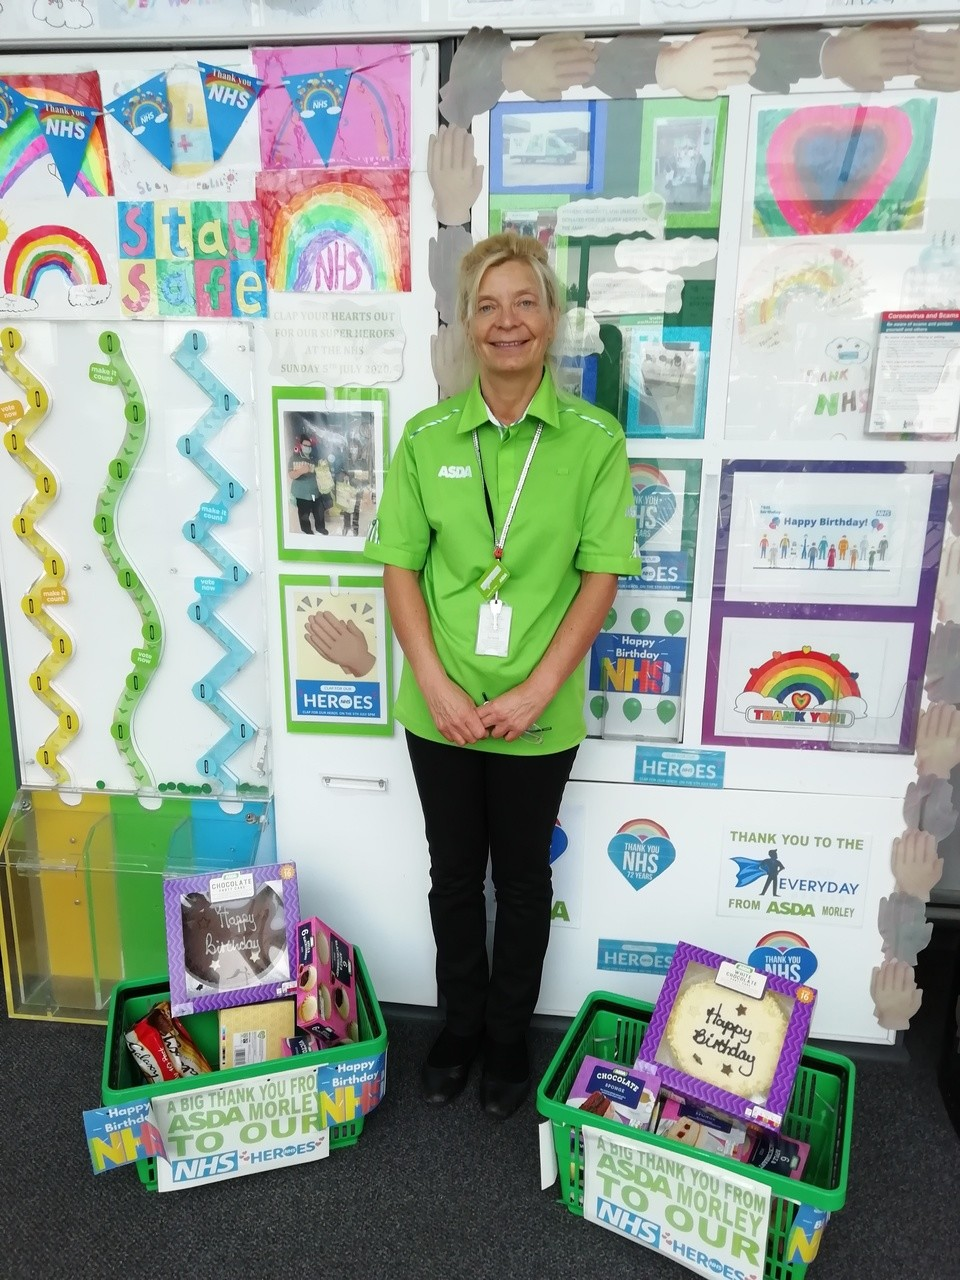 HAPPY 72ND BIRTHDAY TO OUR FANTASTIC NHS   Asda Morley